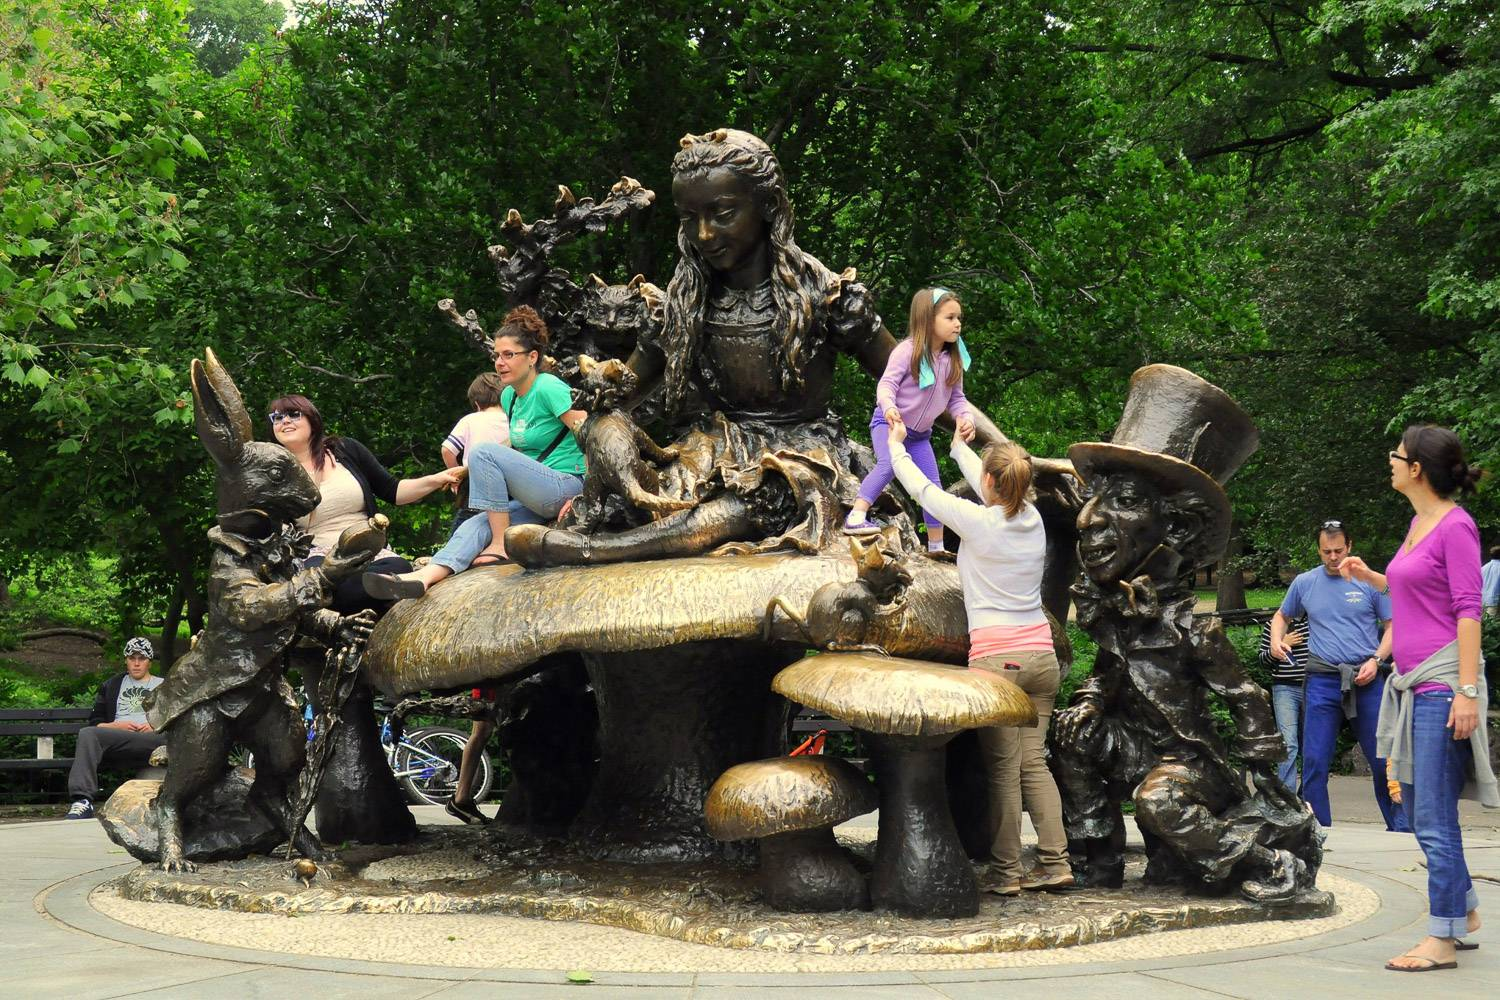 Image of kids climbing on the Alice in Wonderland statue in NYC's Central Park